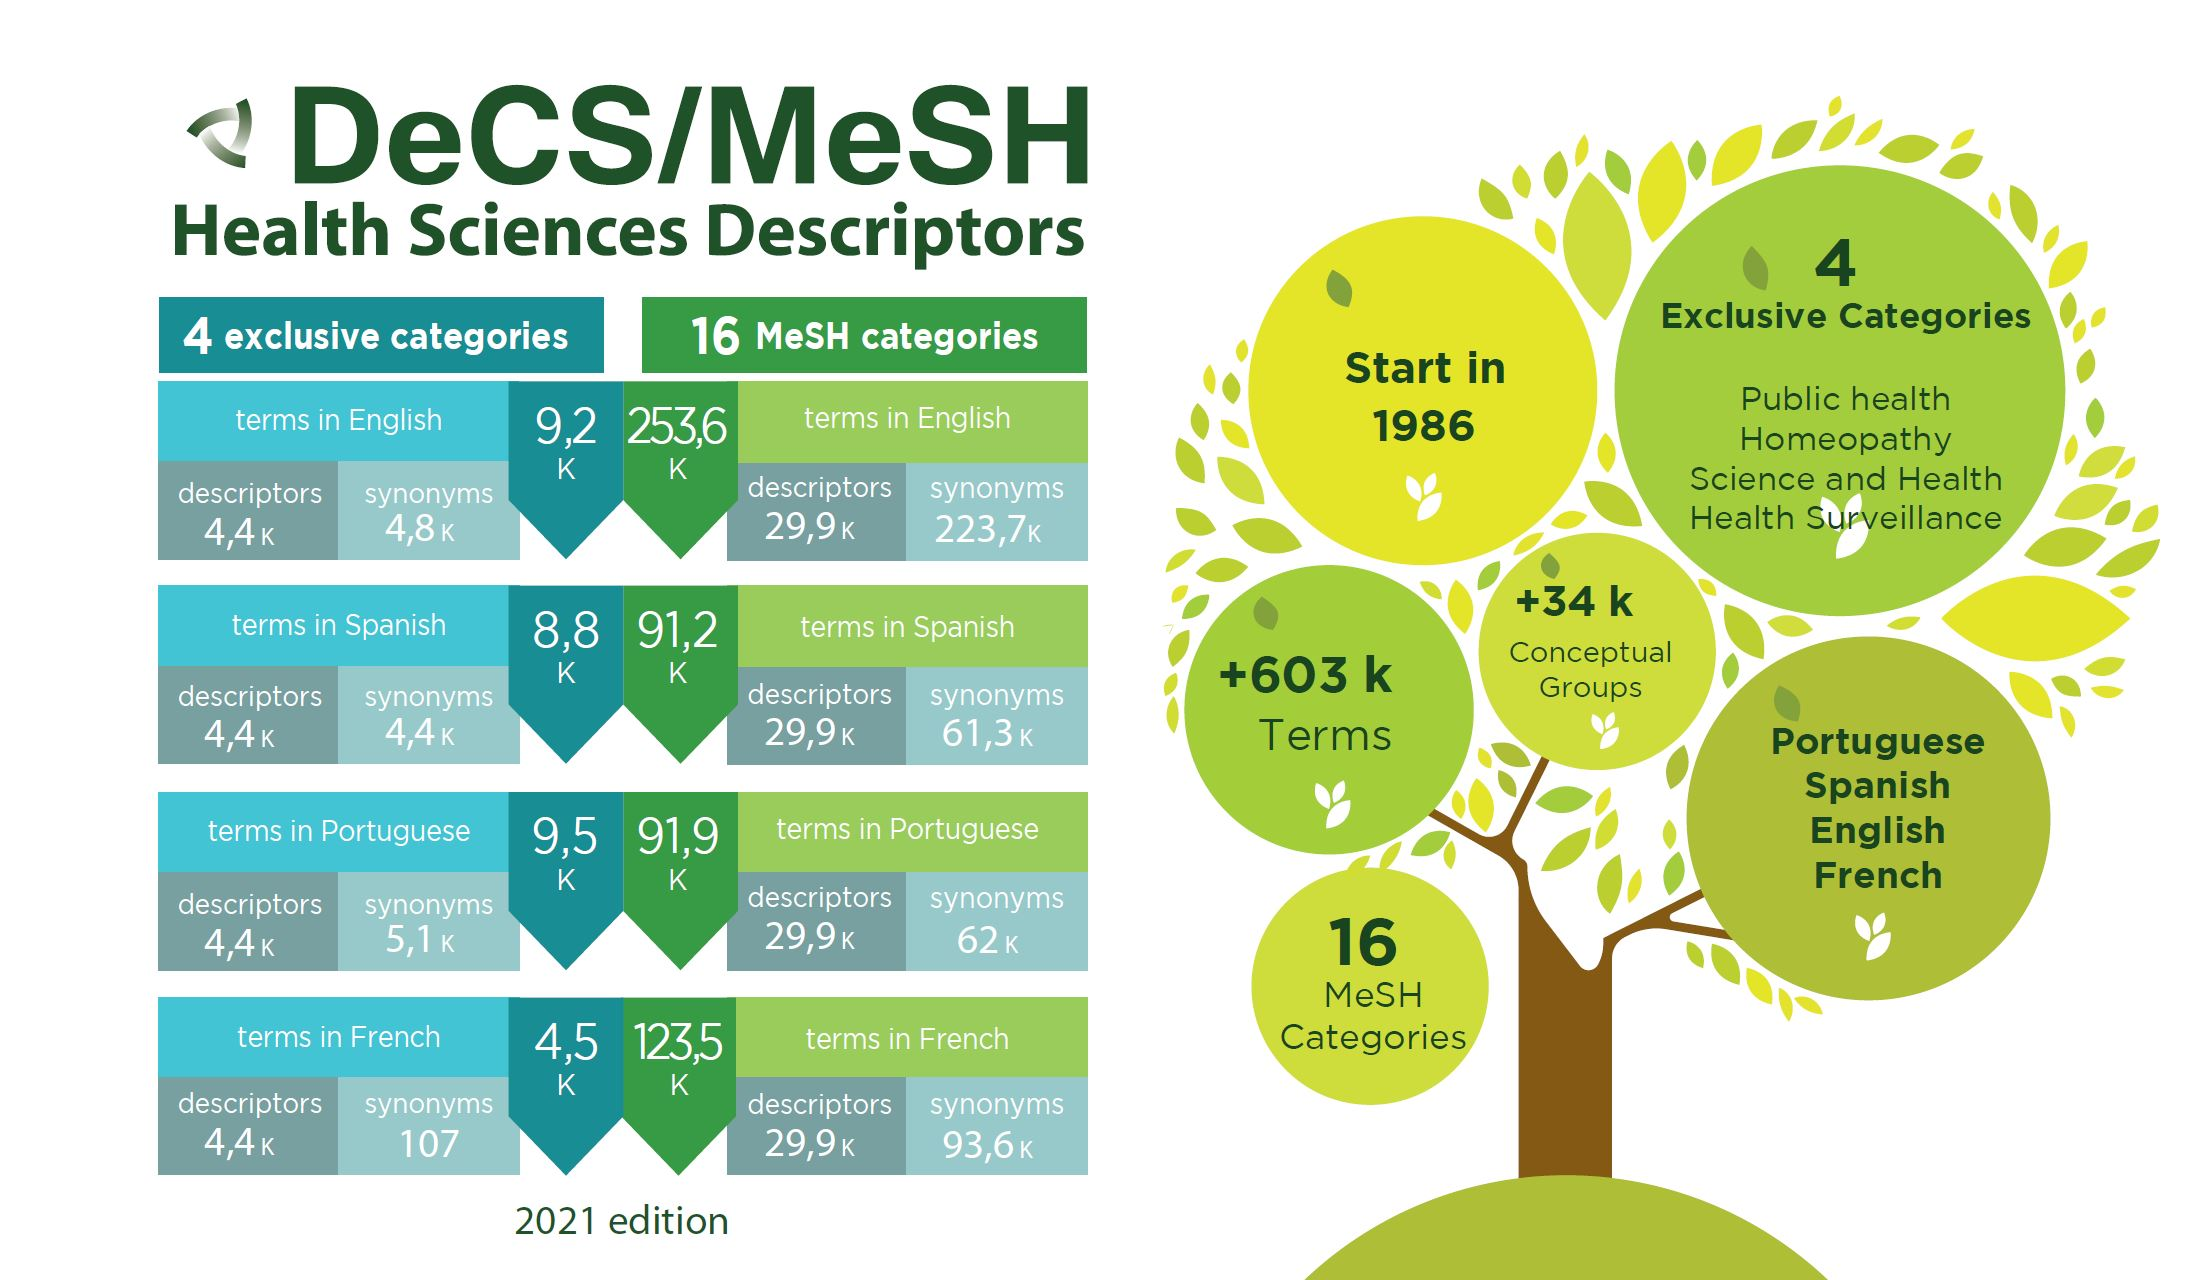 decs-mesh-2021-edition-has-been-published-highlighting-terms-related-to-covid-19